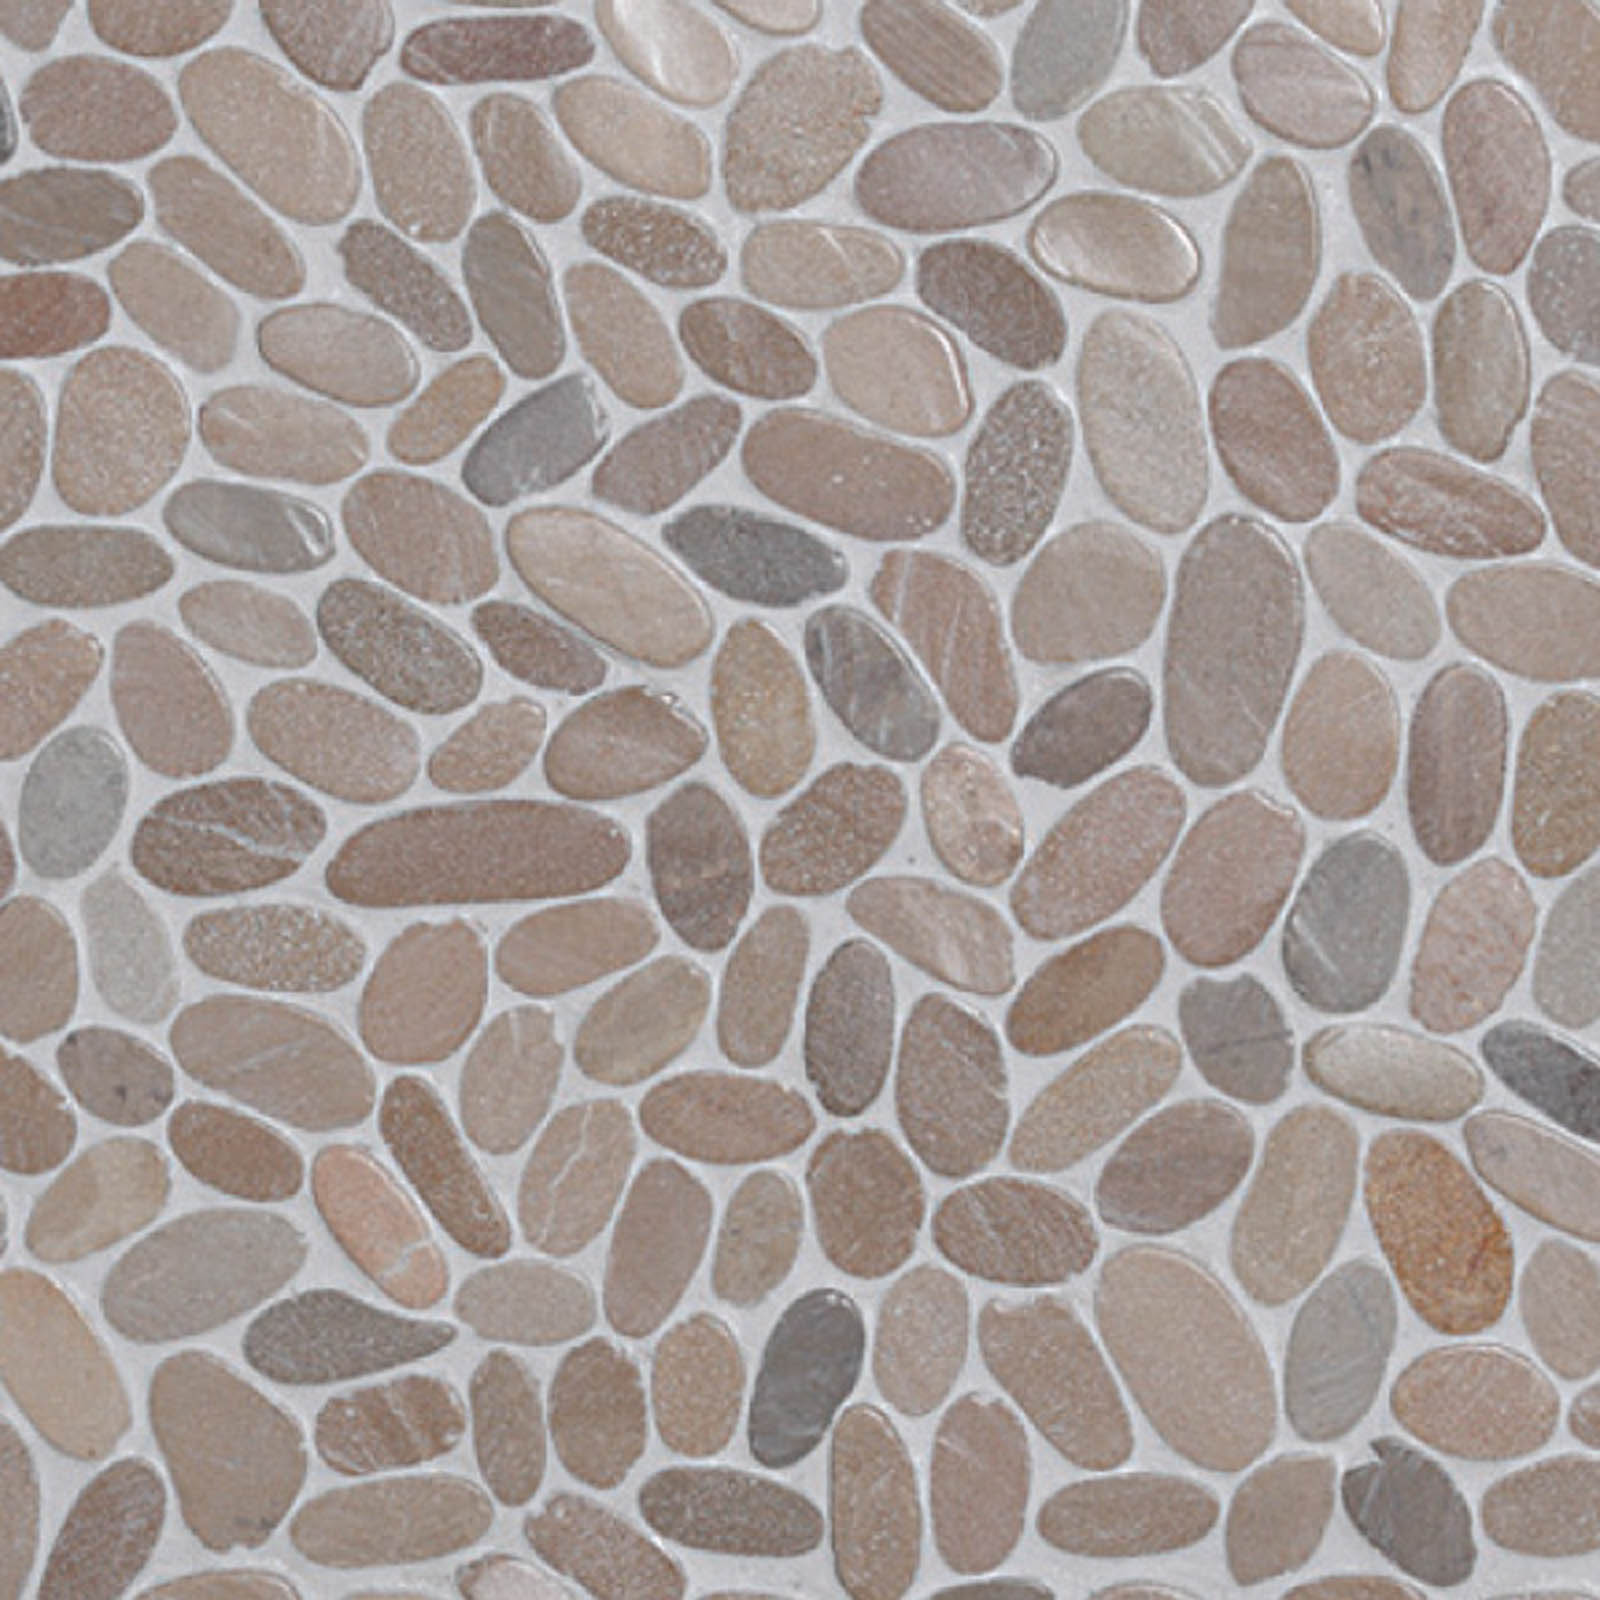 Qualitystone Sliced Pebble Asian Tan Interlock verkolla 300x300 mm